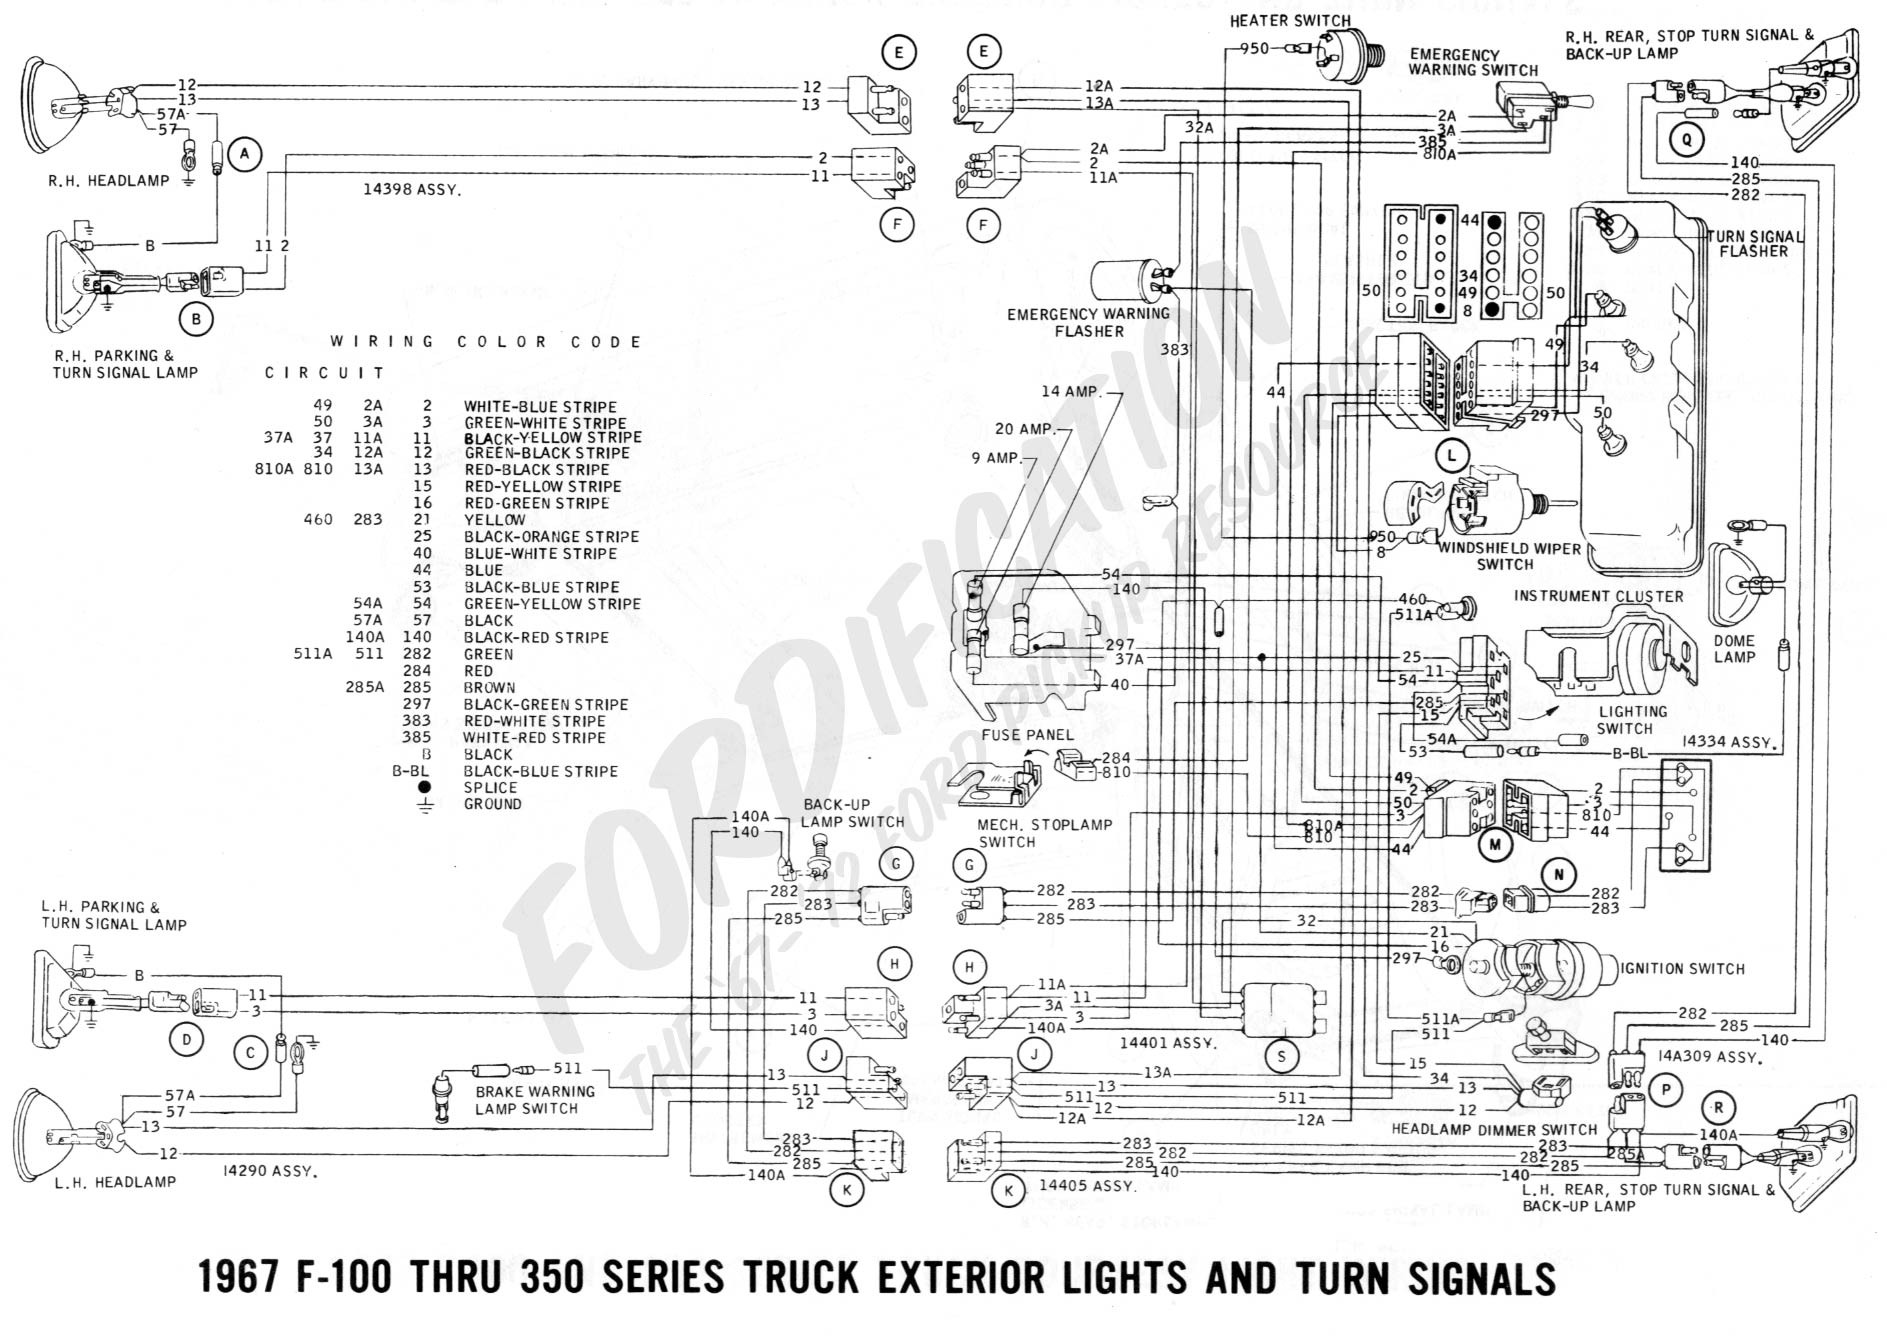 1971 Ford Ignition Wiring Diagram Library 1984 F 150 F100 Tail Light Schematic Diagrams Rh Ogmconsulting Co 1981 F150